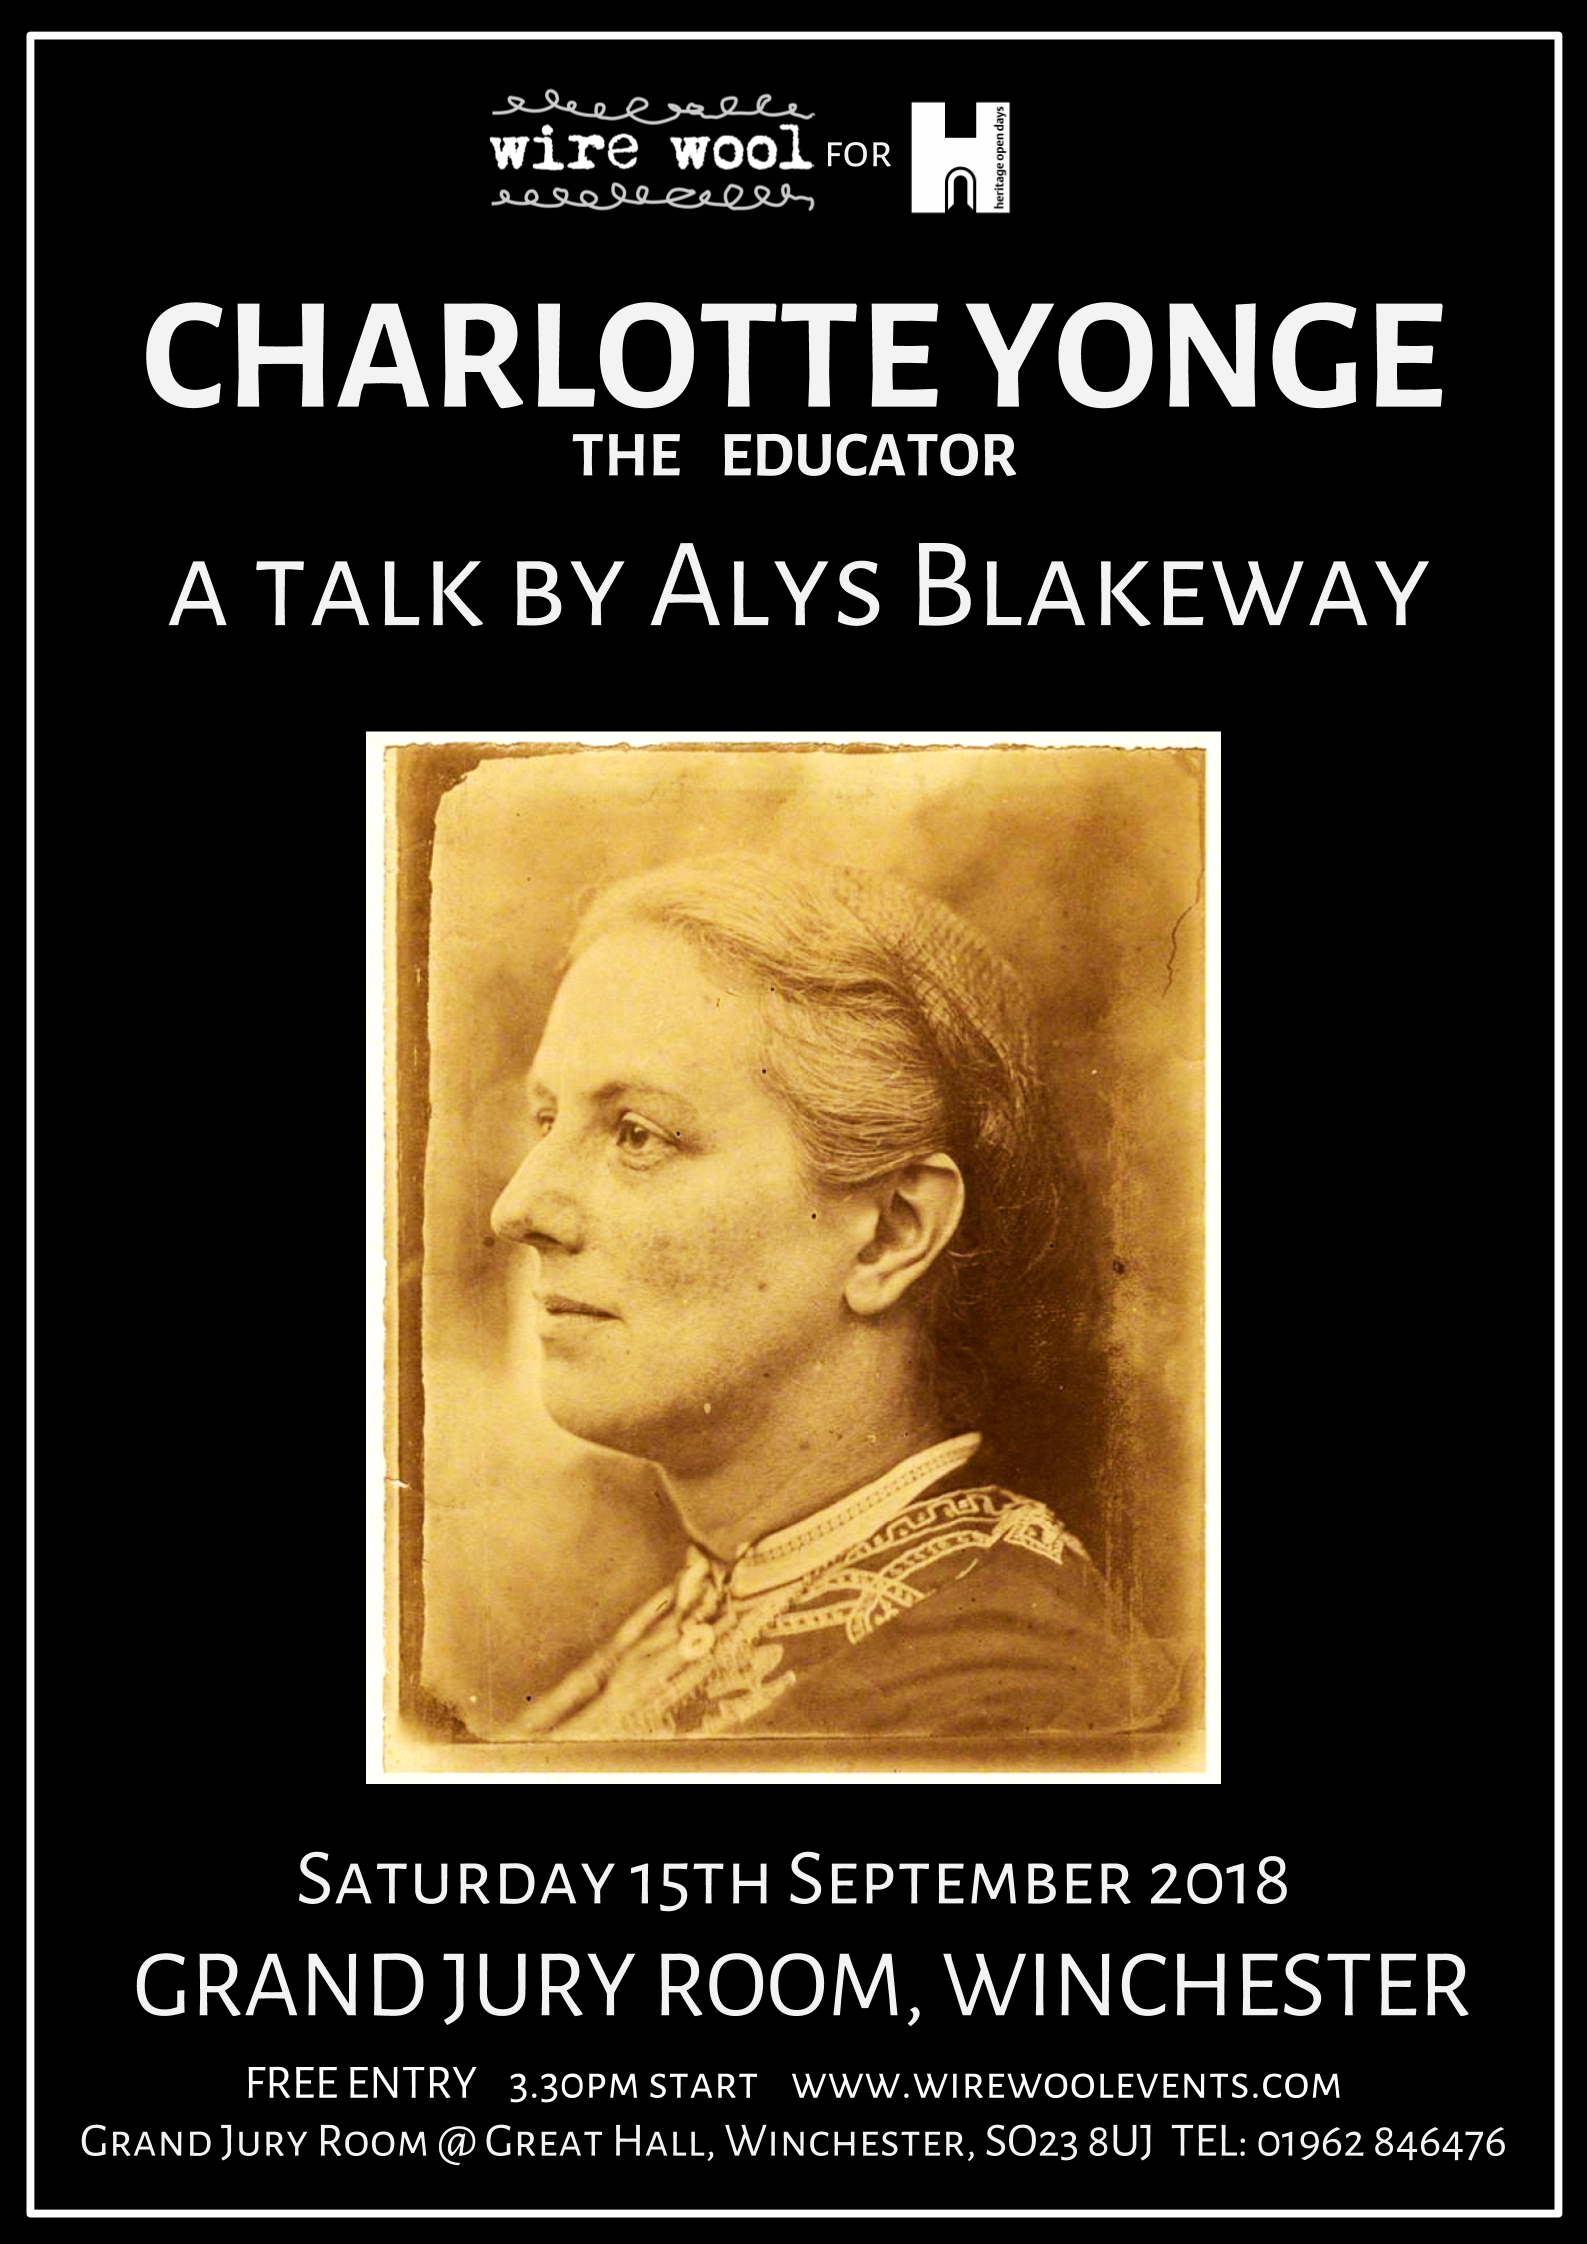 Charlotte Yonge The Educator: a talk by Alys Blakeway  Saturday, September 15, 2018 3:30pm The Grand Jury Room